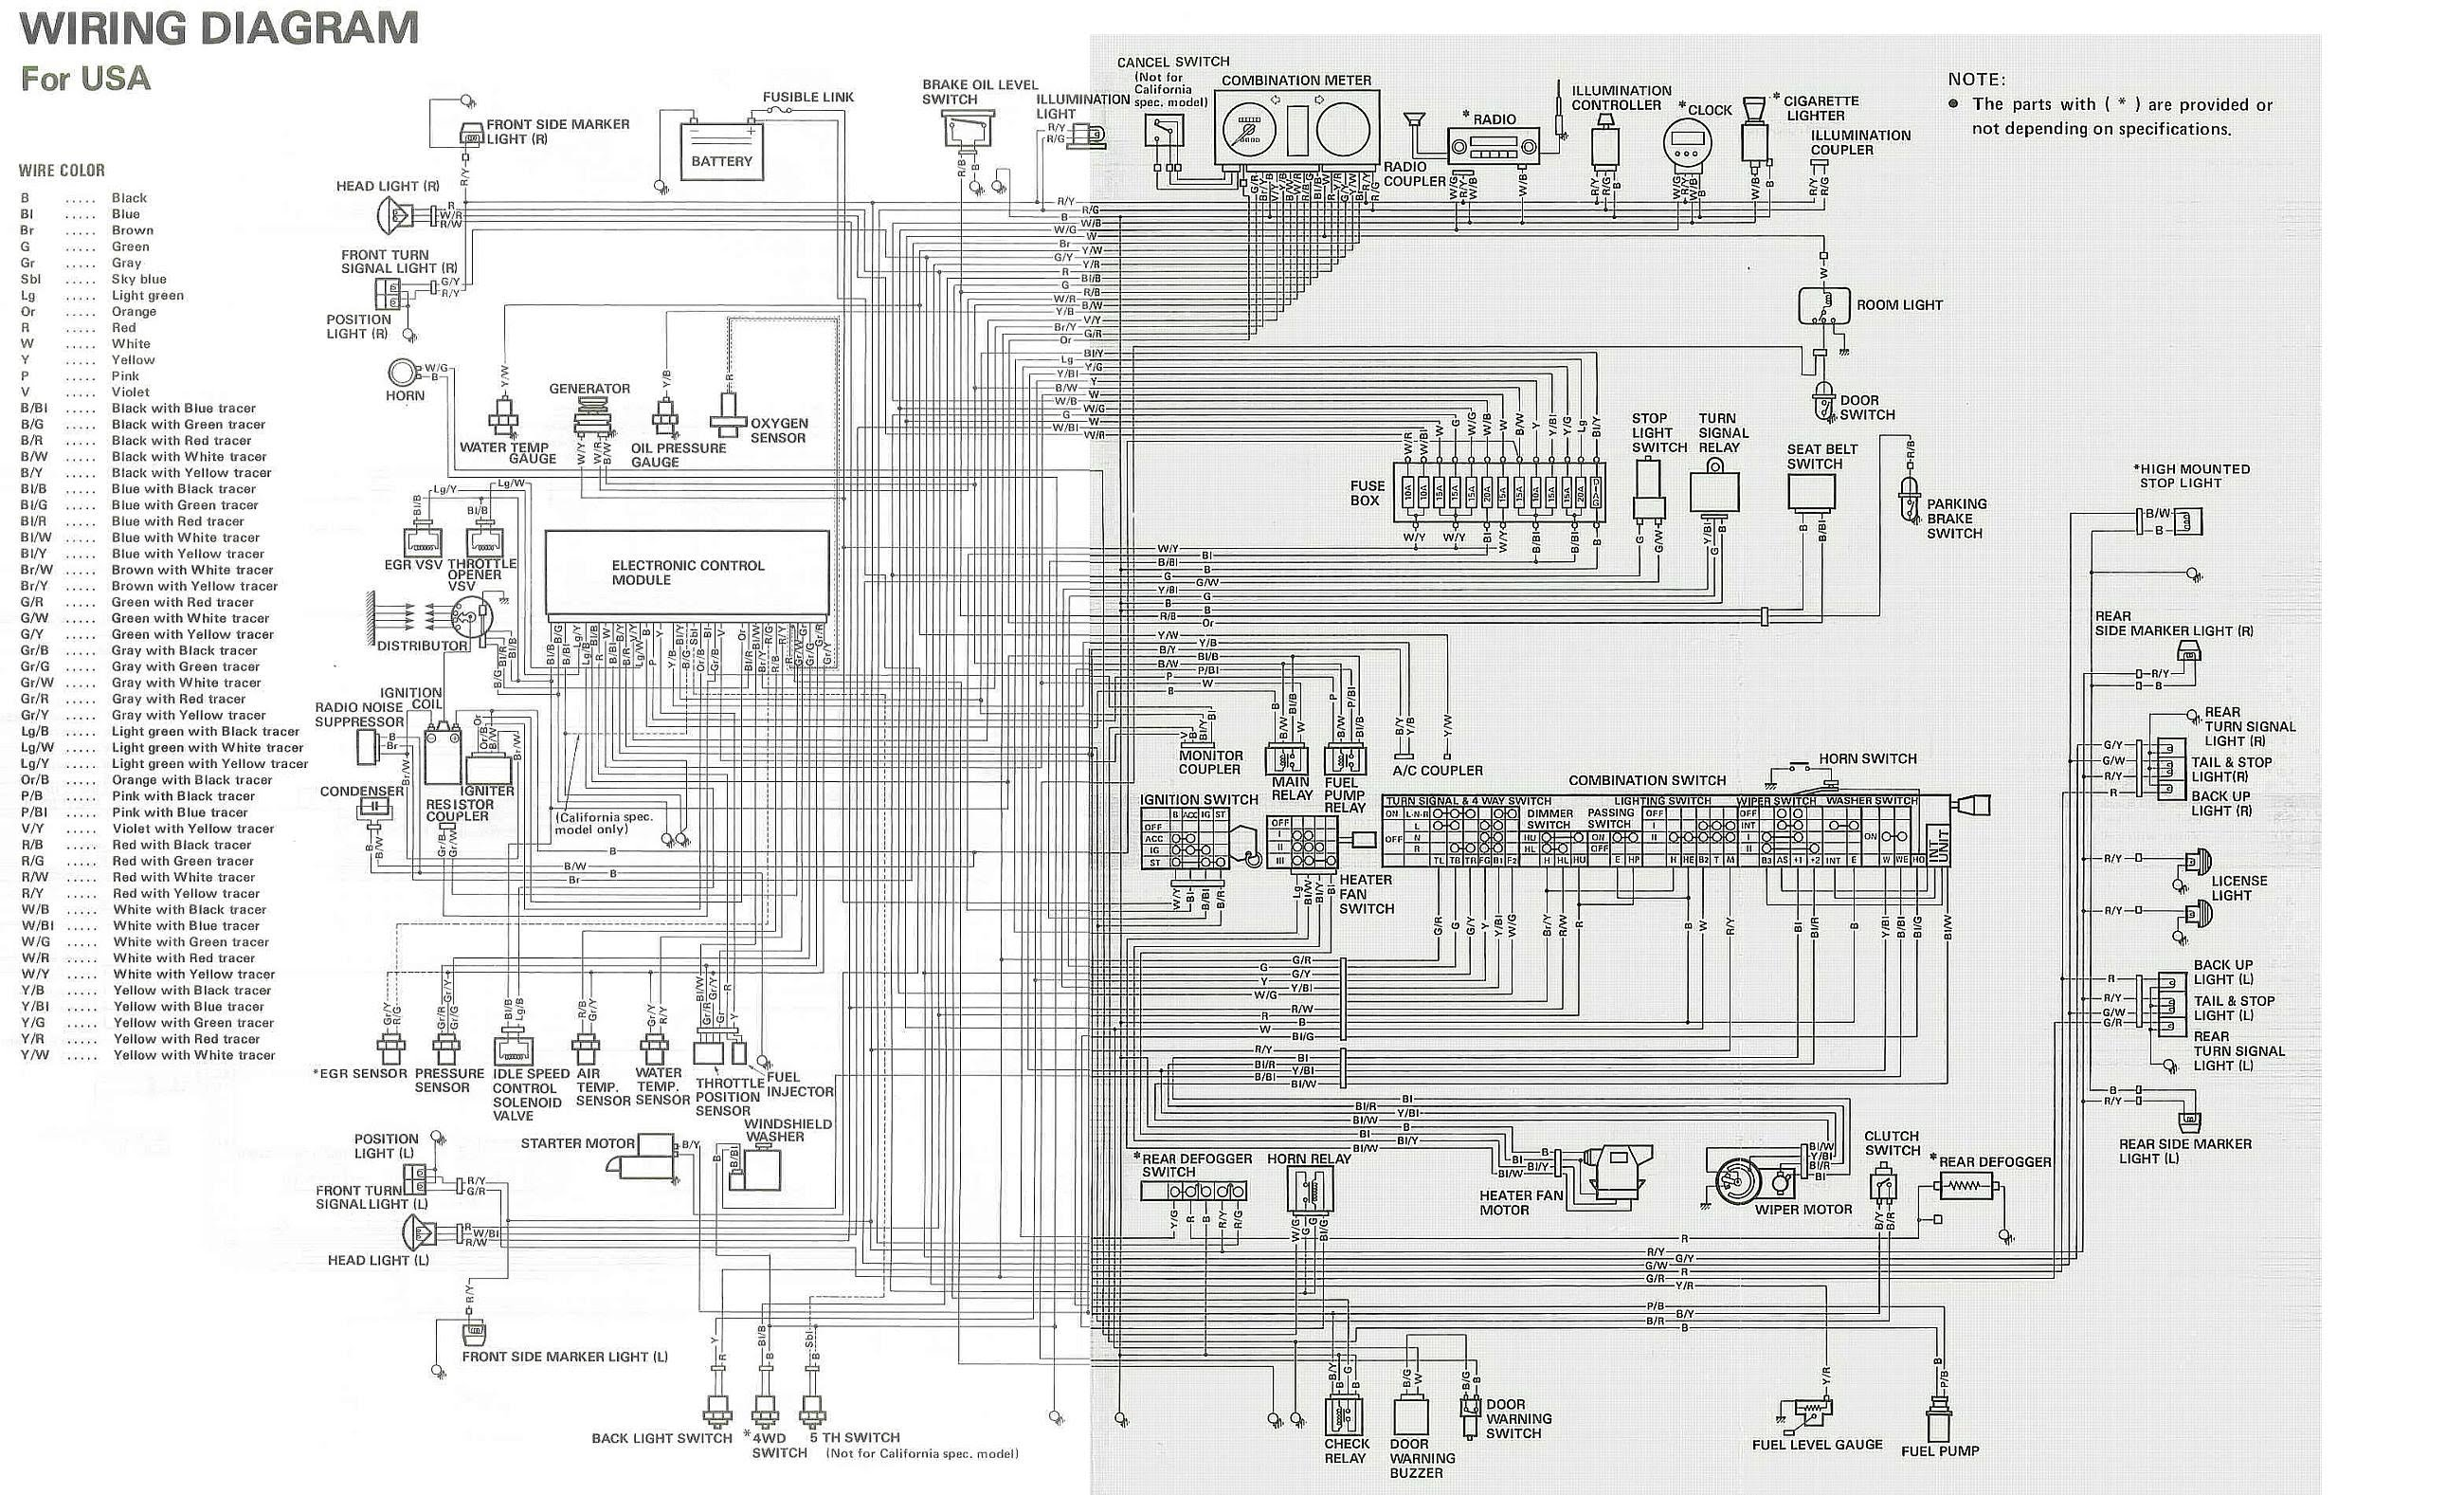 Astonishing Suzuki Ts 50 Wiring Diagram Images - Best Image ...